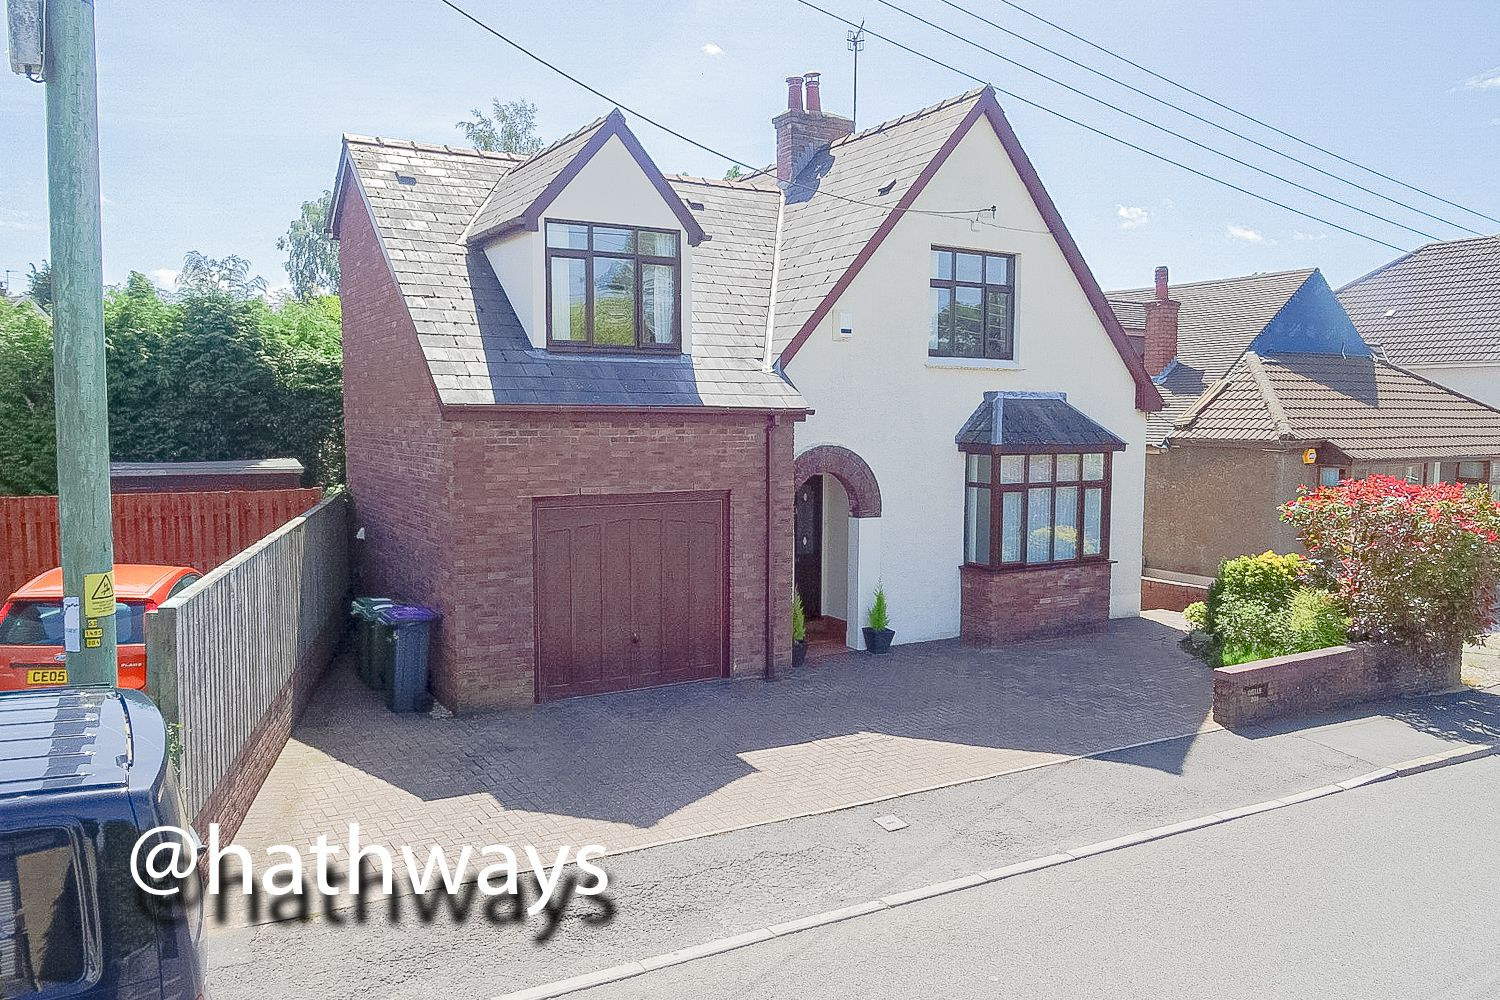 4 bed house for sale in Ashford Close South, NP44